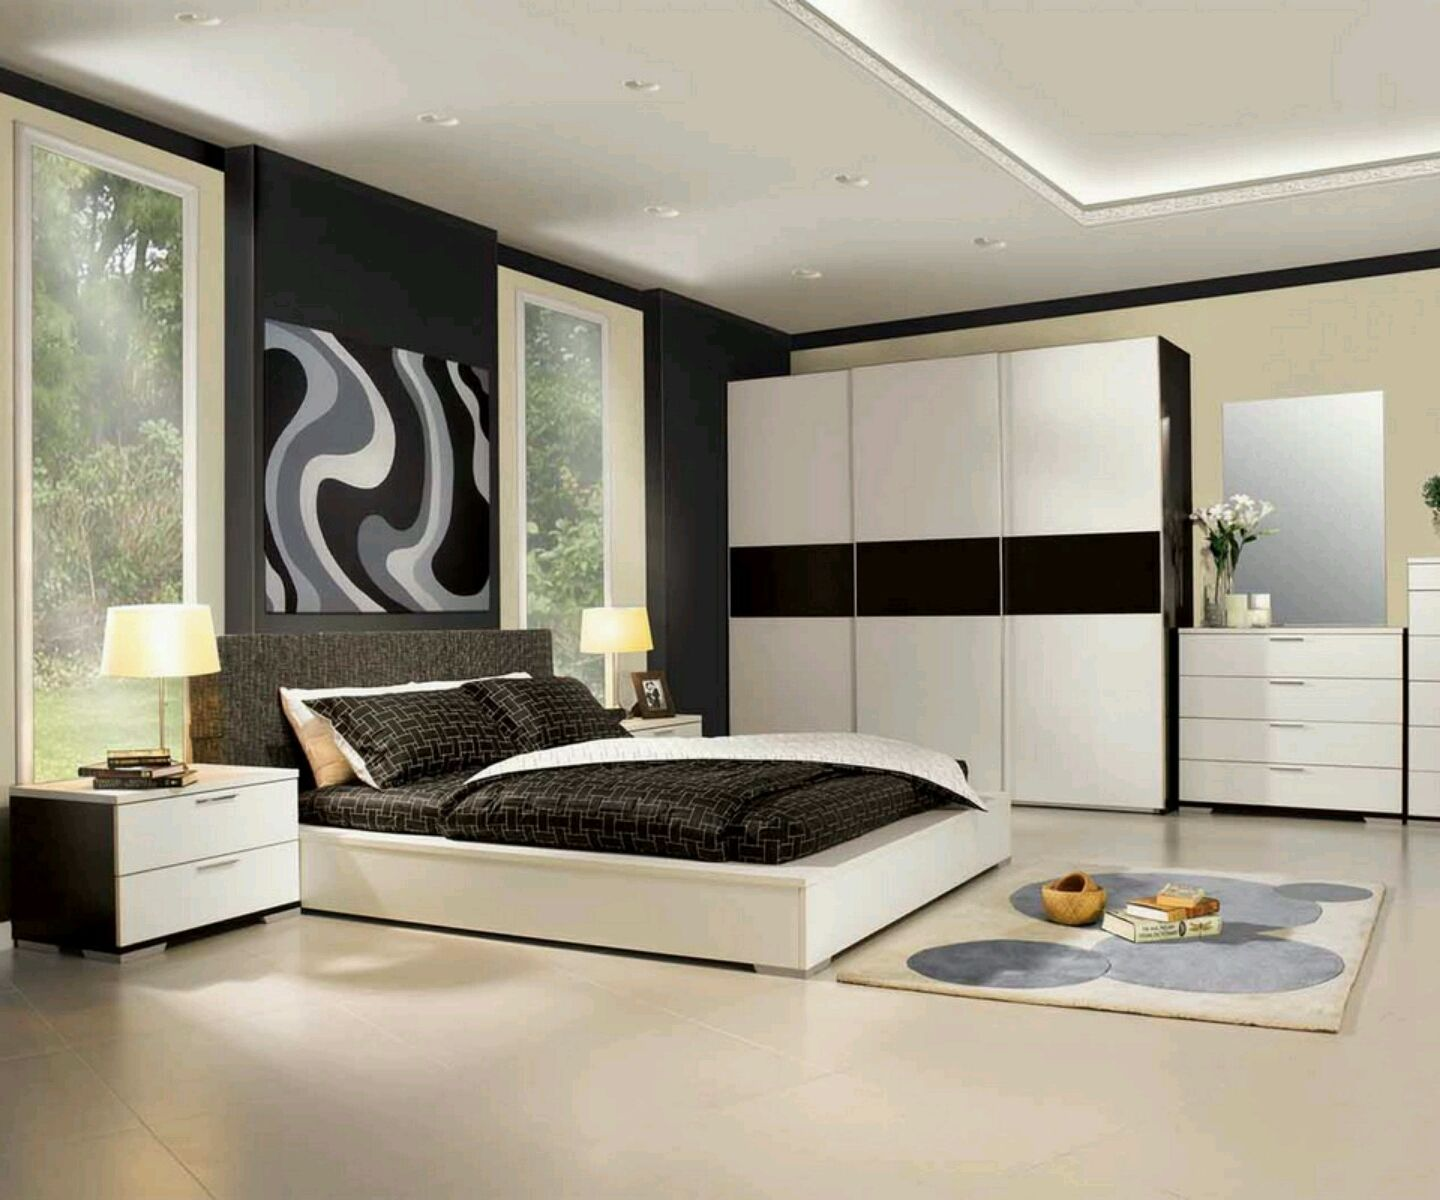 Best Kitchen Gallery: Modern Bedroom Furniture Design For More Pictures And Design Ideas of Design A  Bedroom  on rachelxblog.com